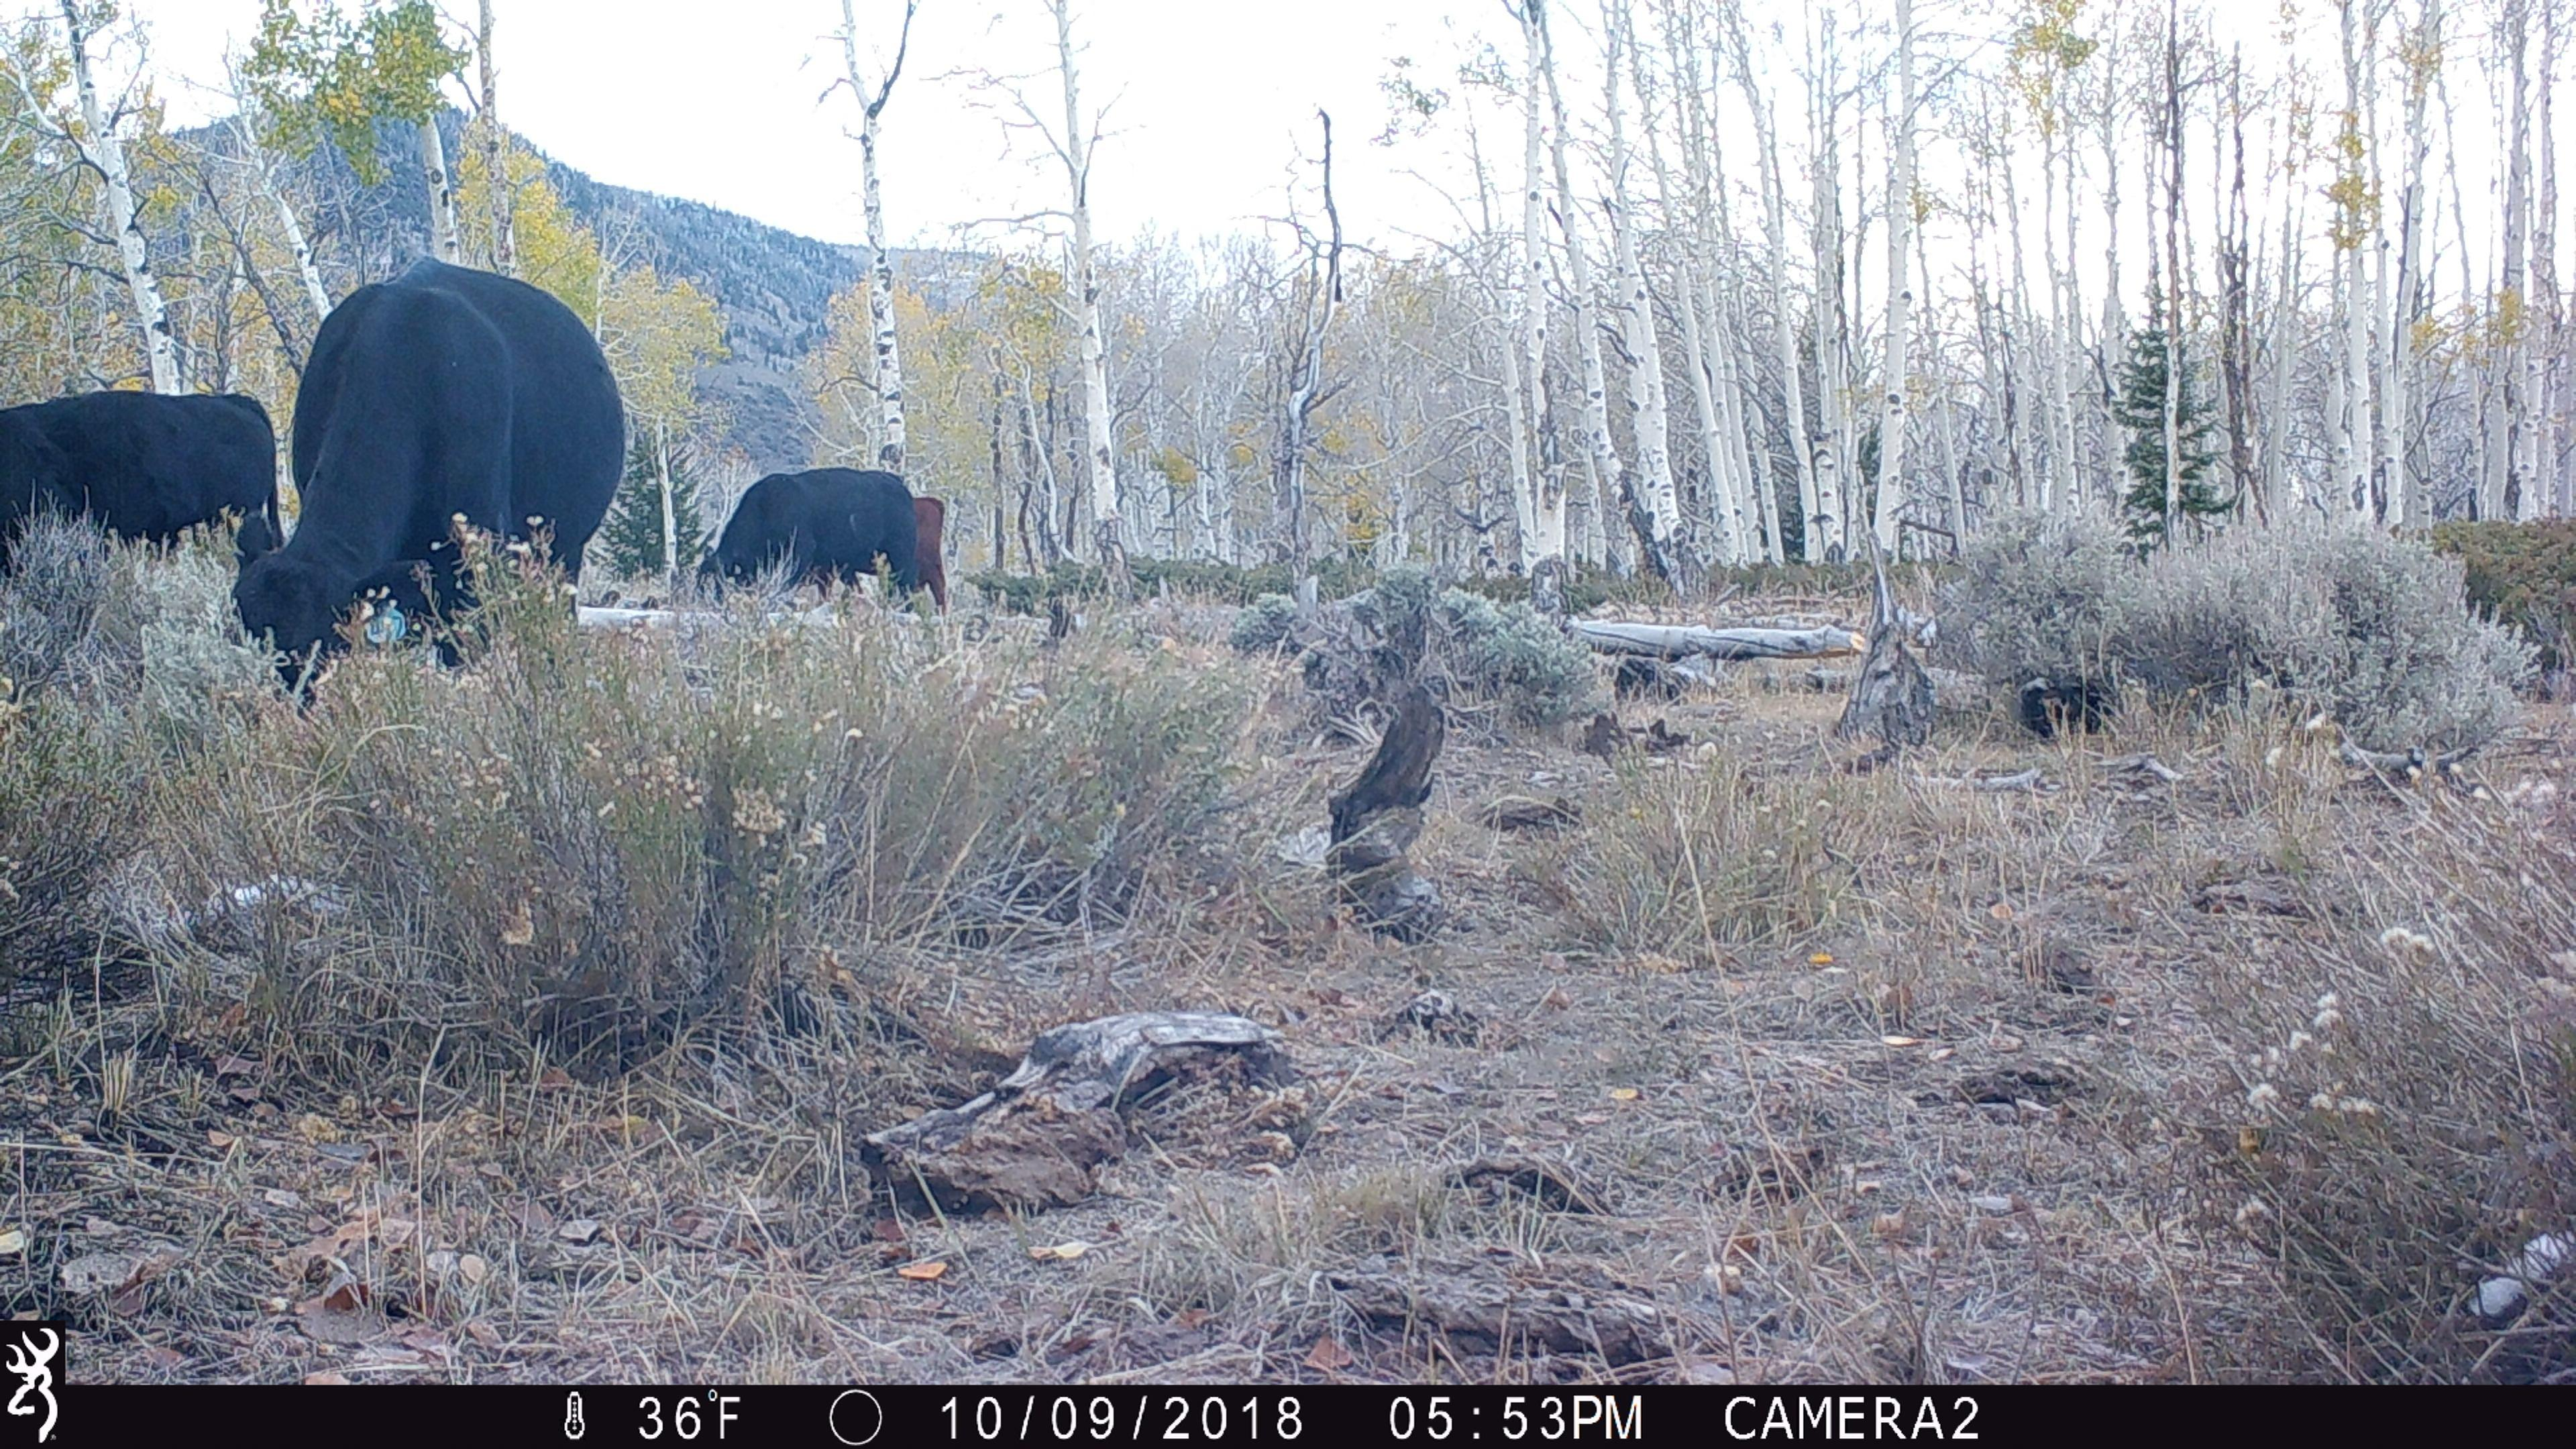 Figure 10.Camera 2 on October 9, 2018, at 36°F. The bovines are only there a few weeks.Source:Western Watersheds Project.